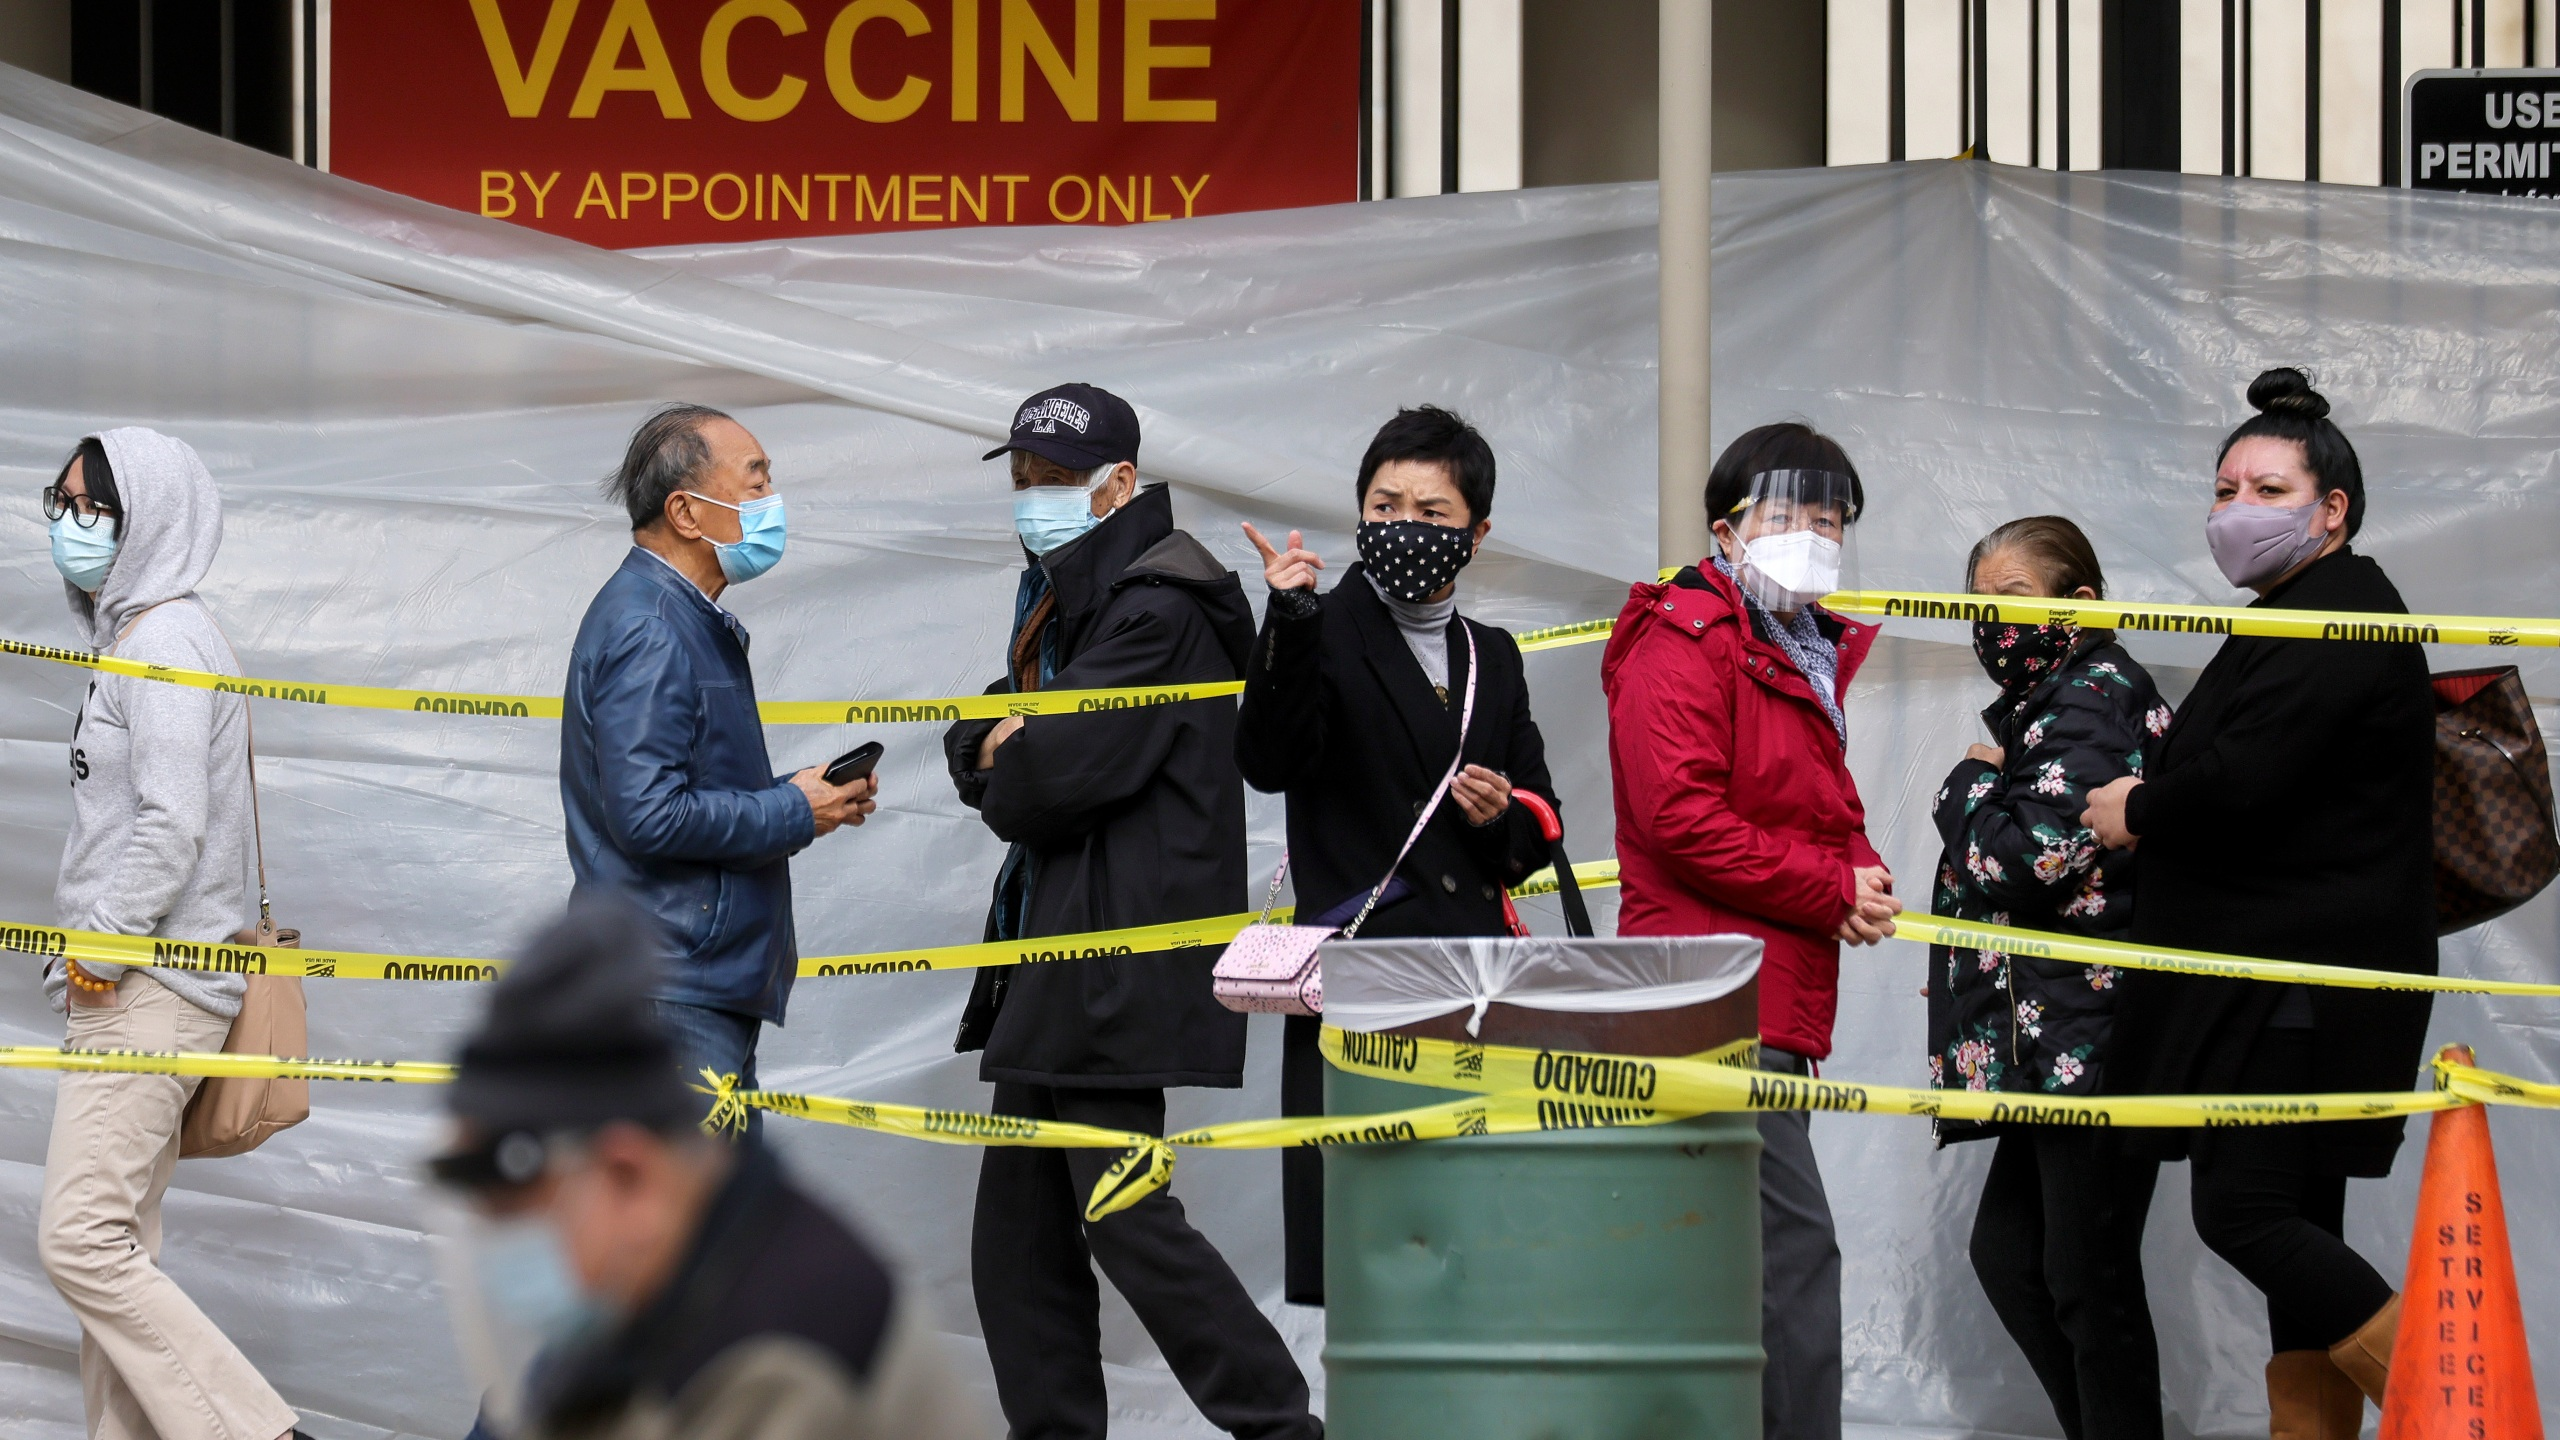 People with appointments walk in line to receive the COVID-19 vaccine at a vaccination site at Lincoln Park amid eased lockdown restrictions on January 28, 2021 in Los Angeles, California. (Mario Tama/Getty Images)